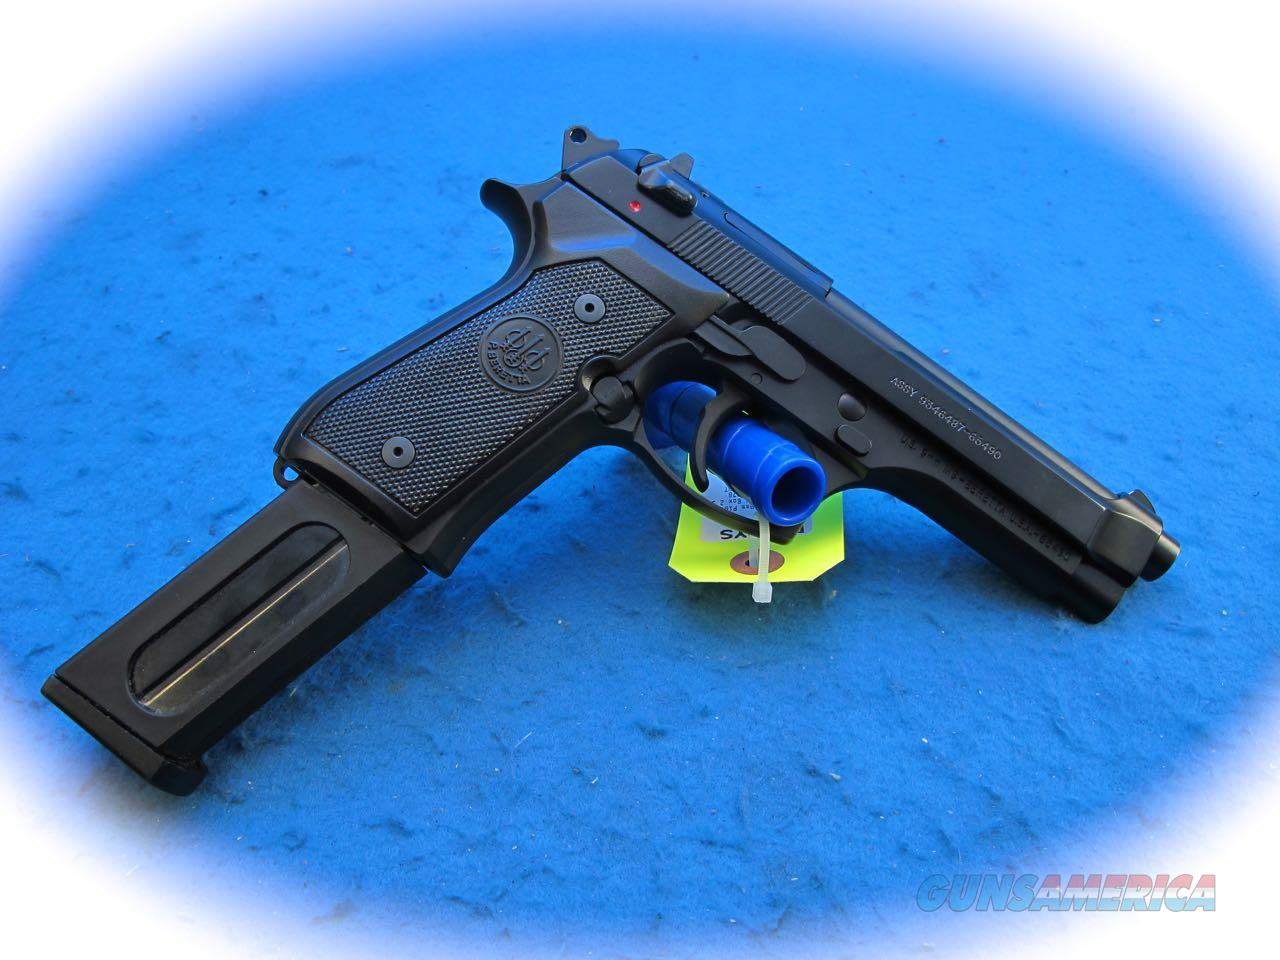 Beretta M9 9mm Semi Auto Pistol w/ Accessories **Used**  Guns > Pistols > Beretta Pistols > M9